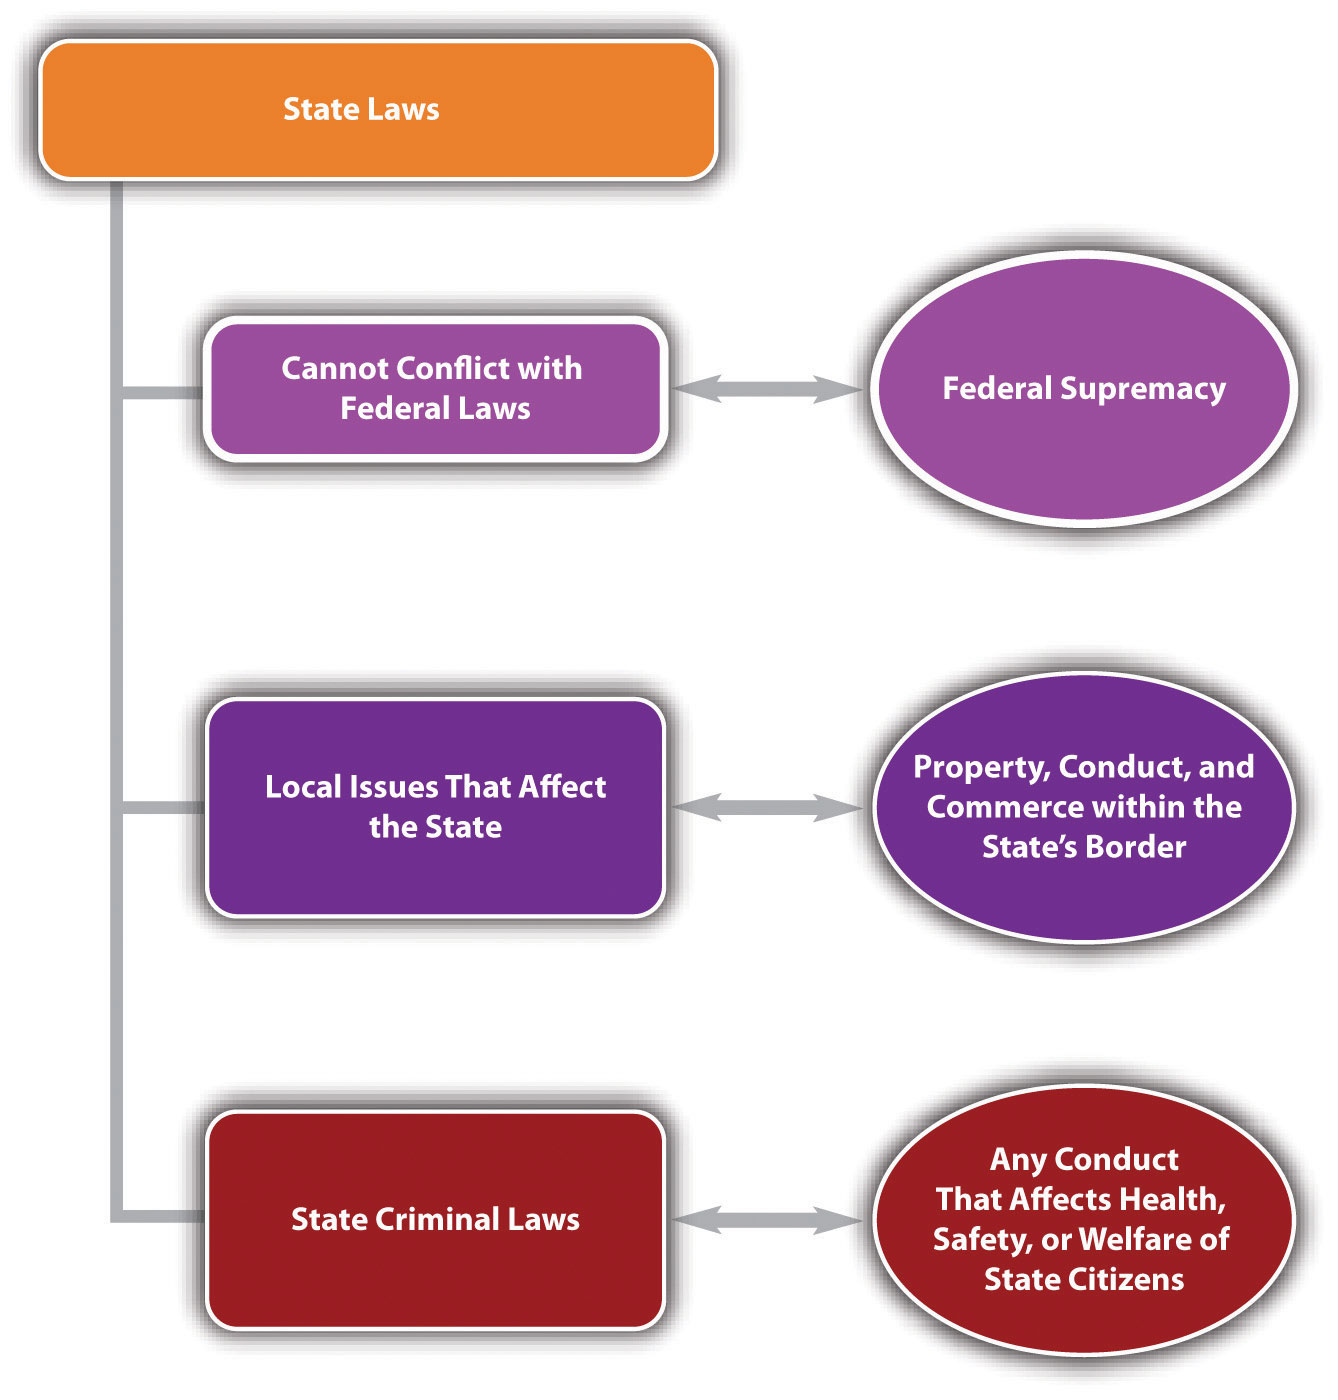 Diagram of State Laws